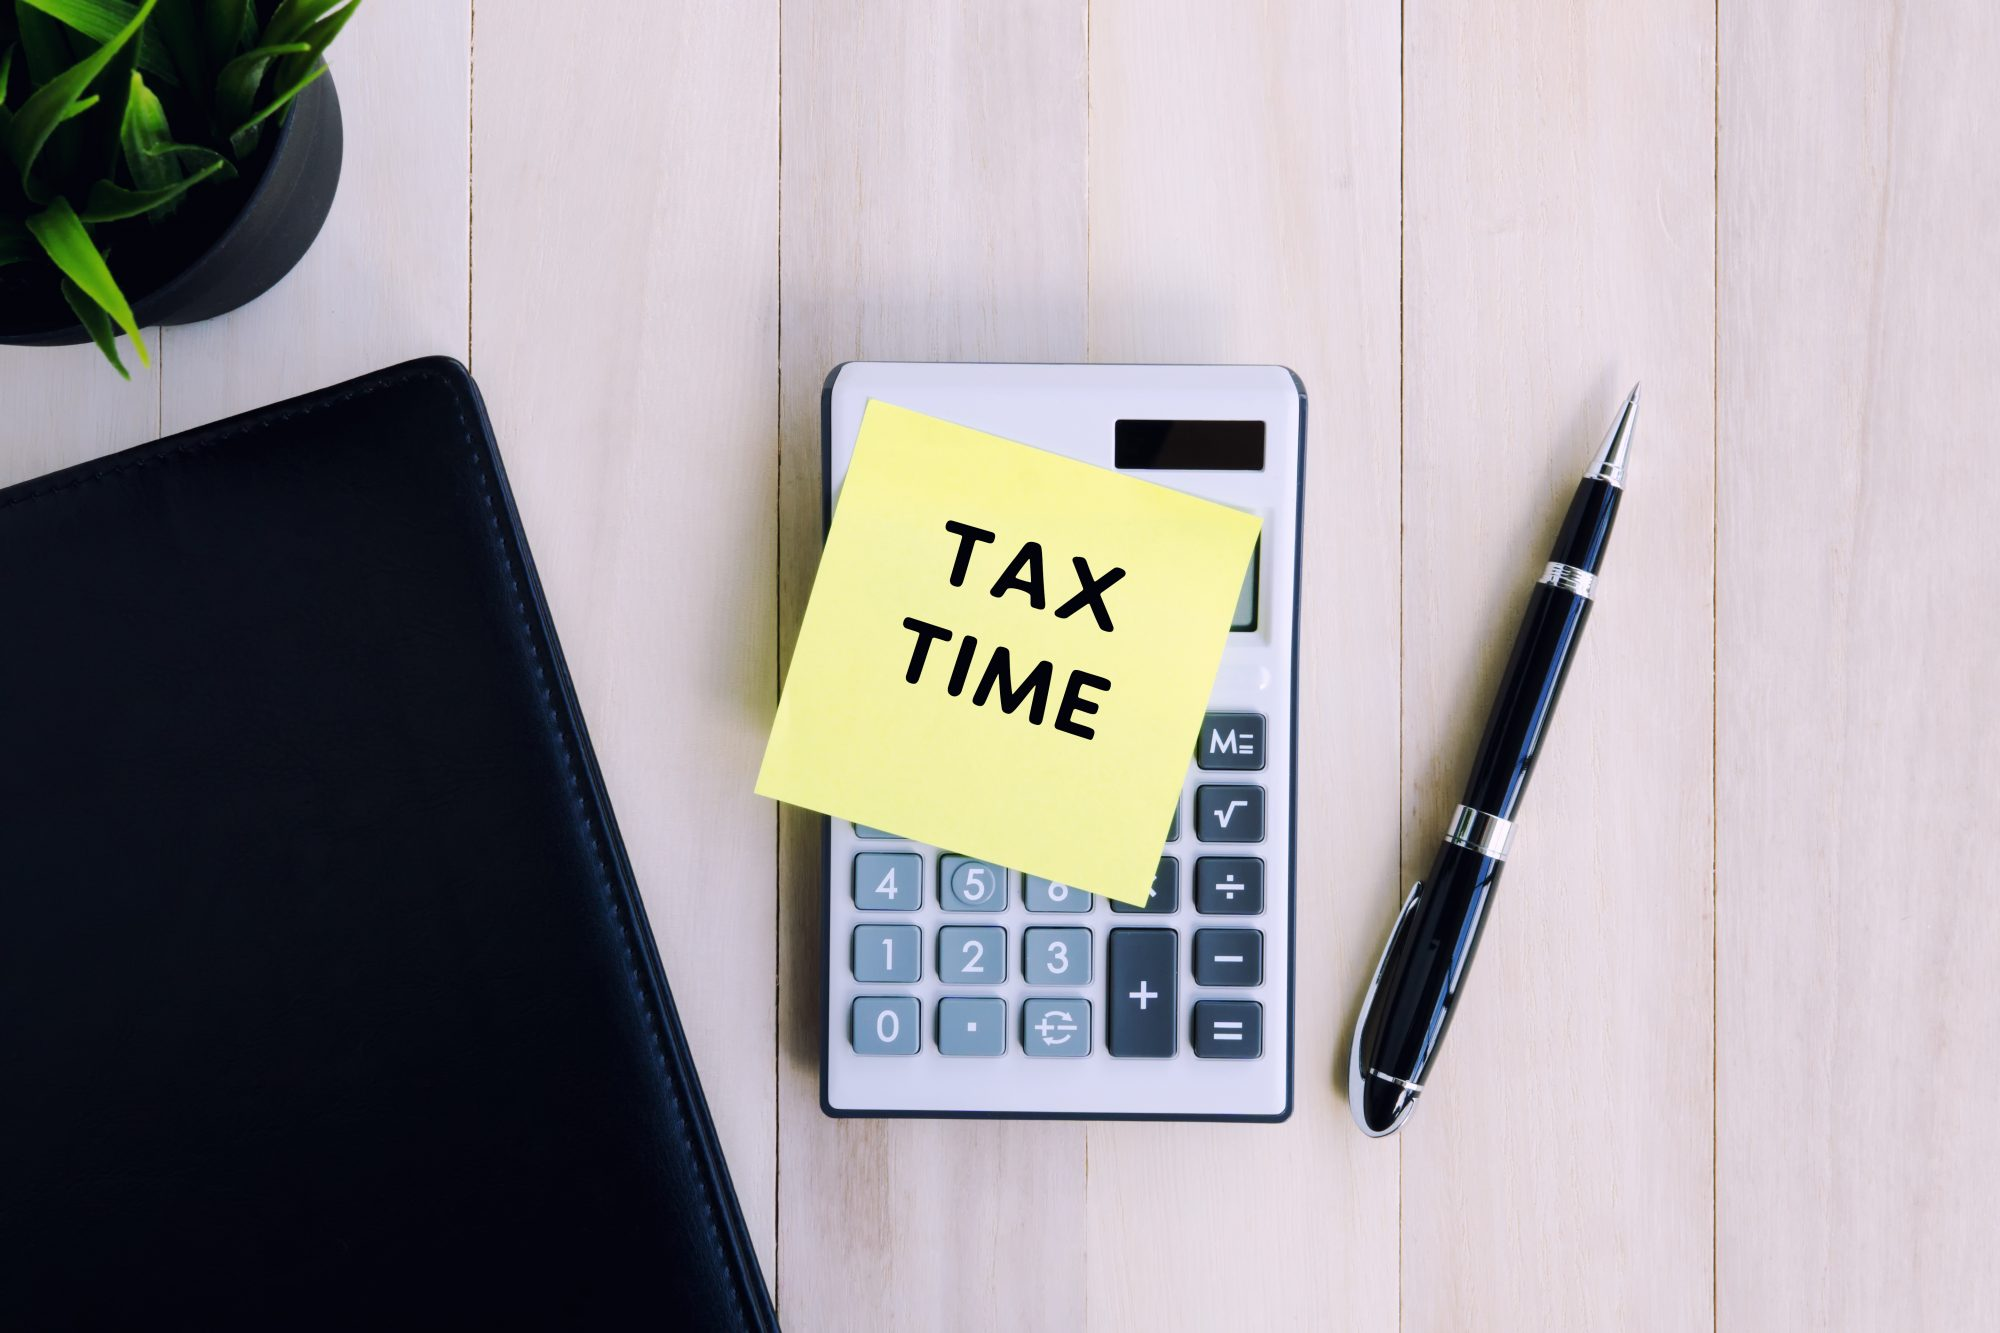 tax time calculator: tax day extended to July 15, 2020